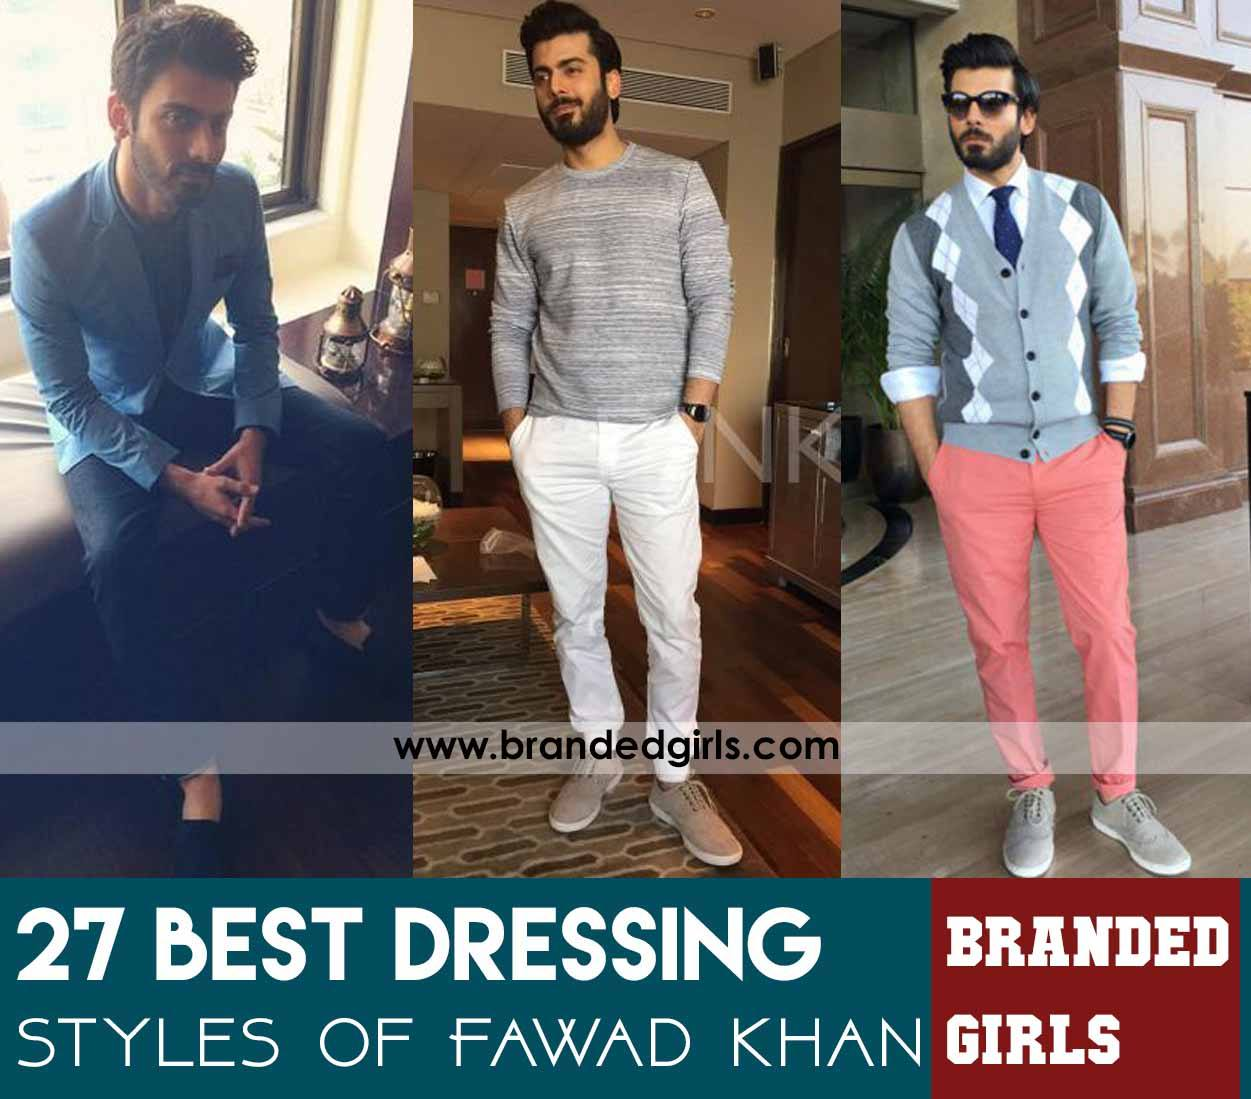 polyvore-sample-1 Fawad Khan Dressing Styles-27 Best Outfits of Fawad Khan to Copy